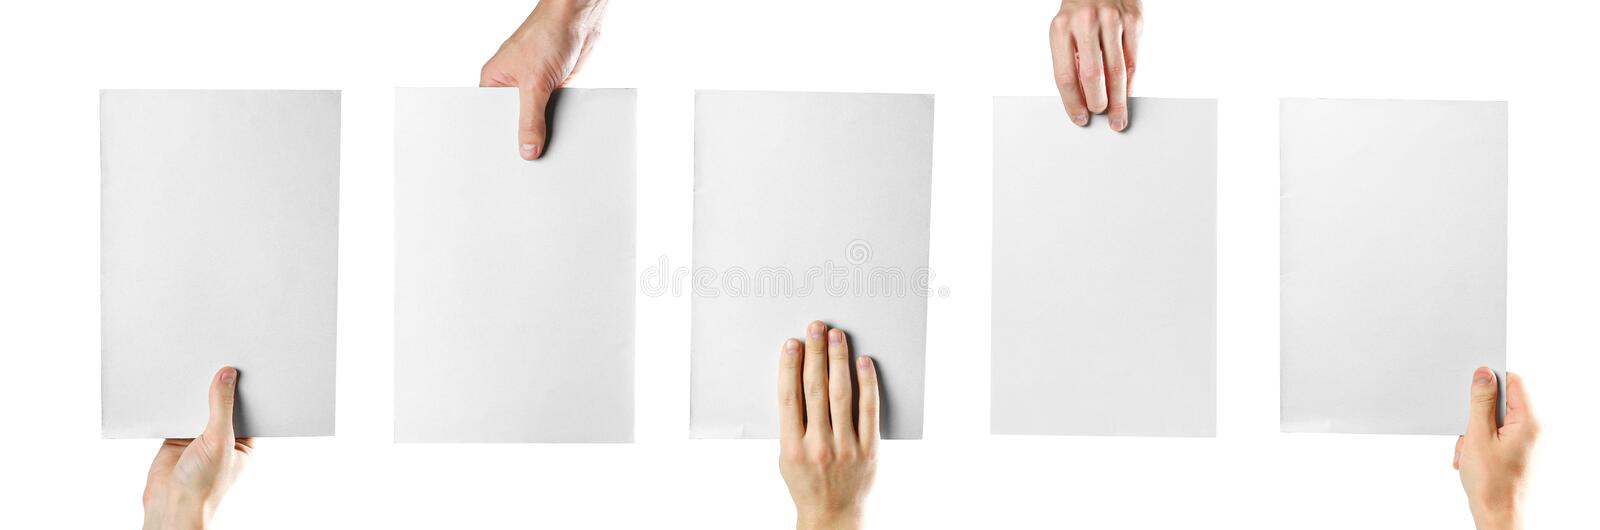 Hands holding white blank paper. Close up. Isolated on white background. stock photography